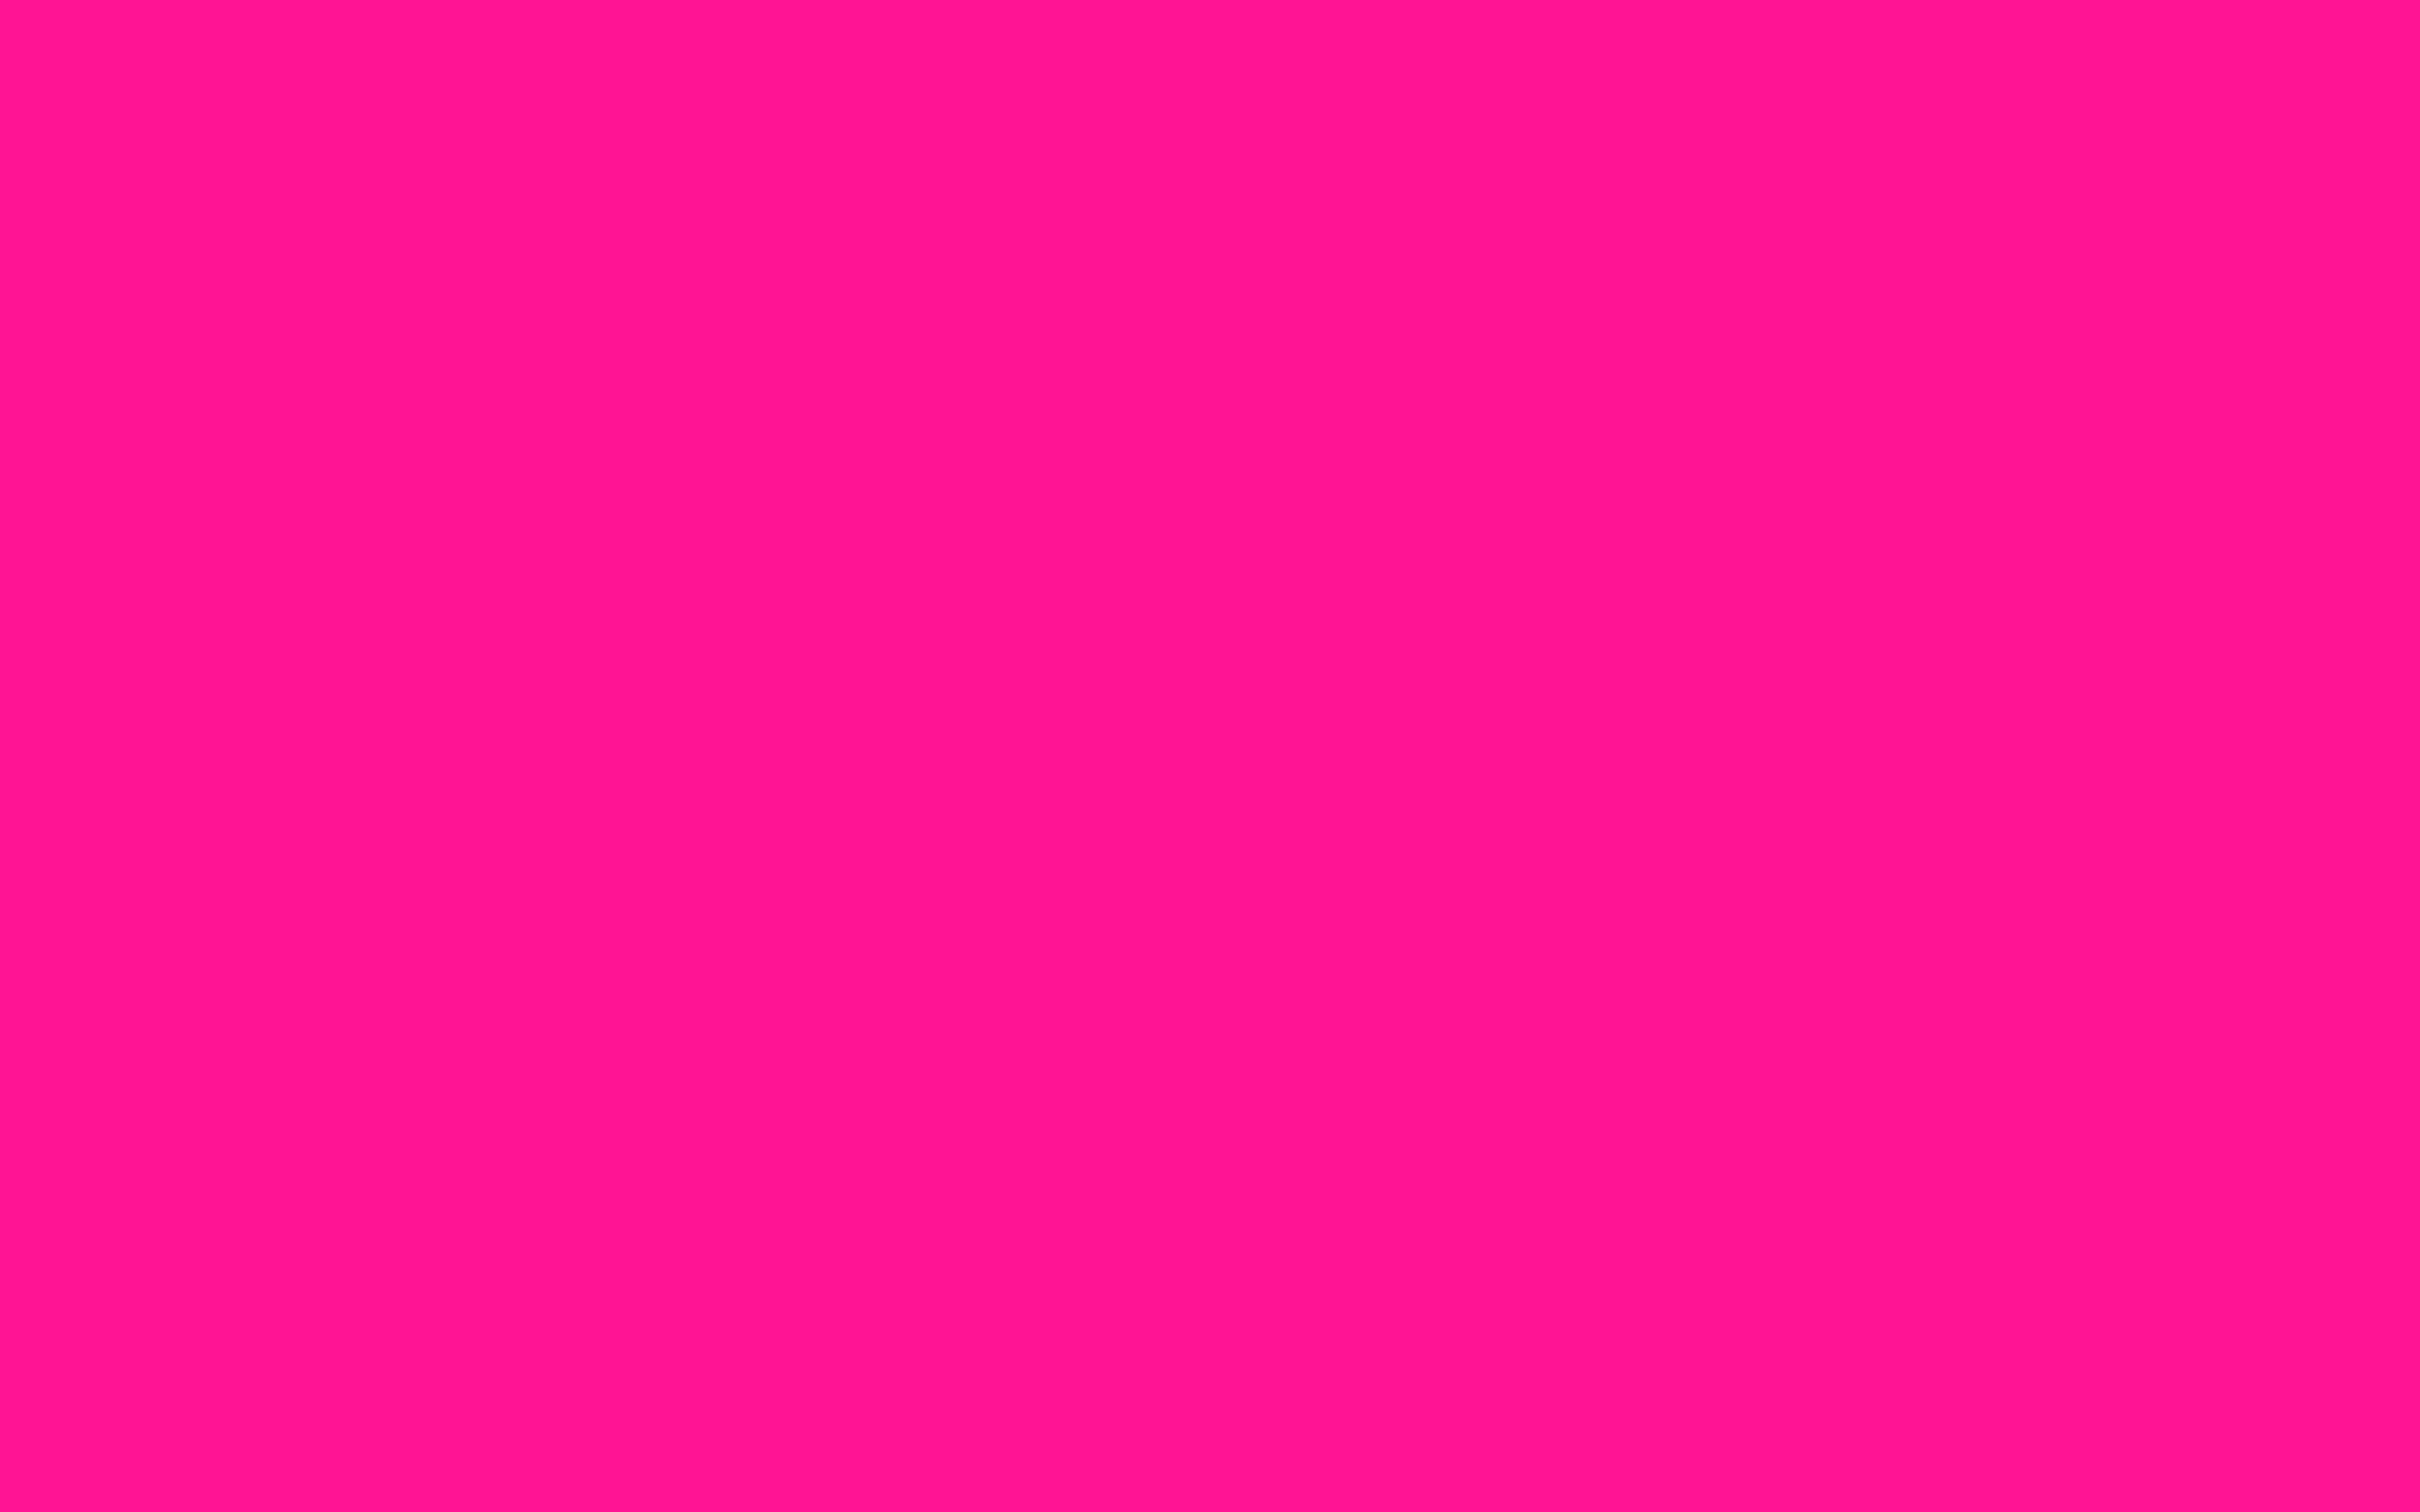 Pink Color Pink Wallpapers